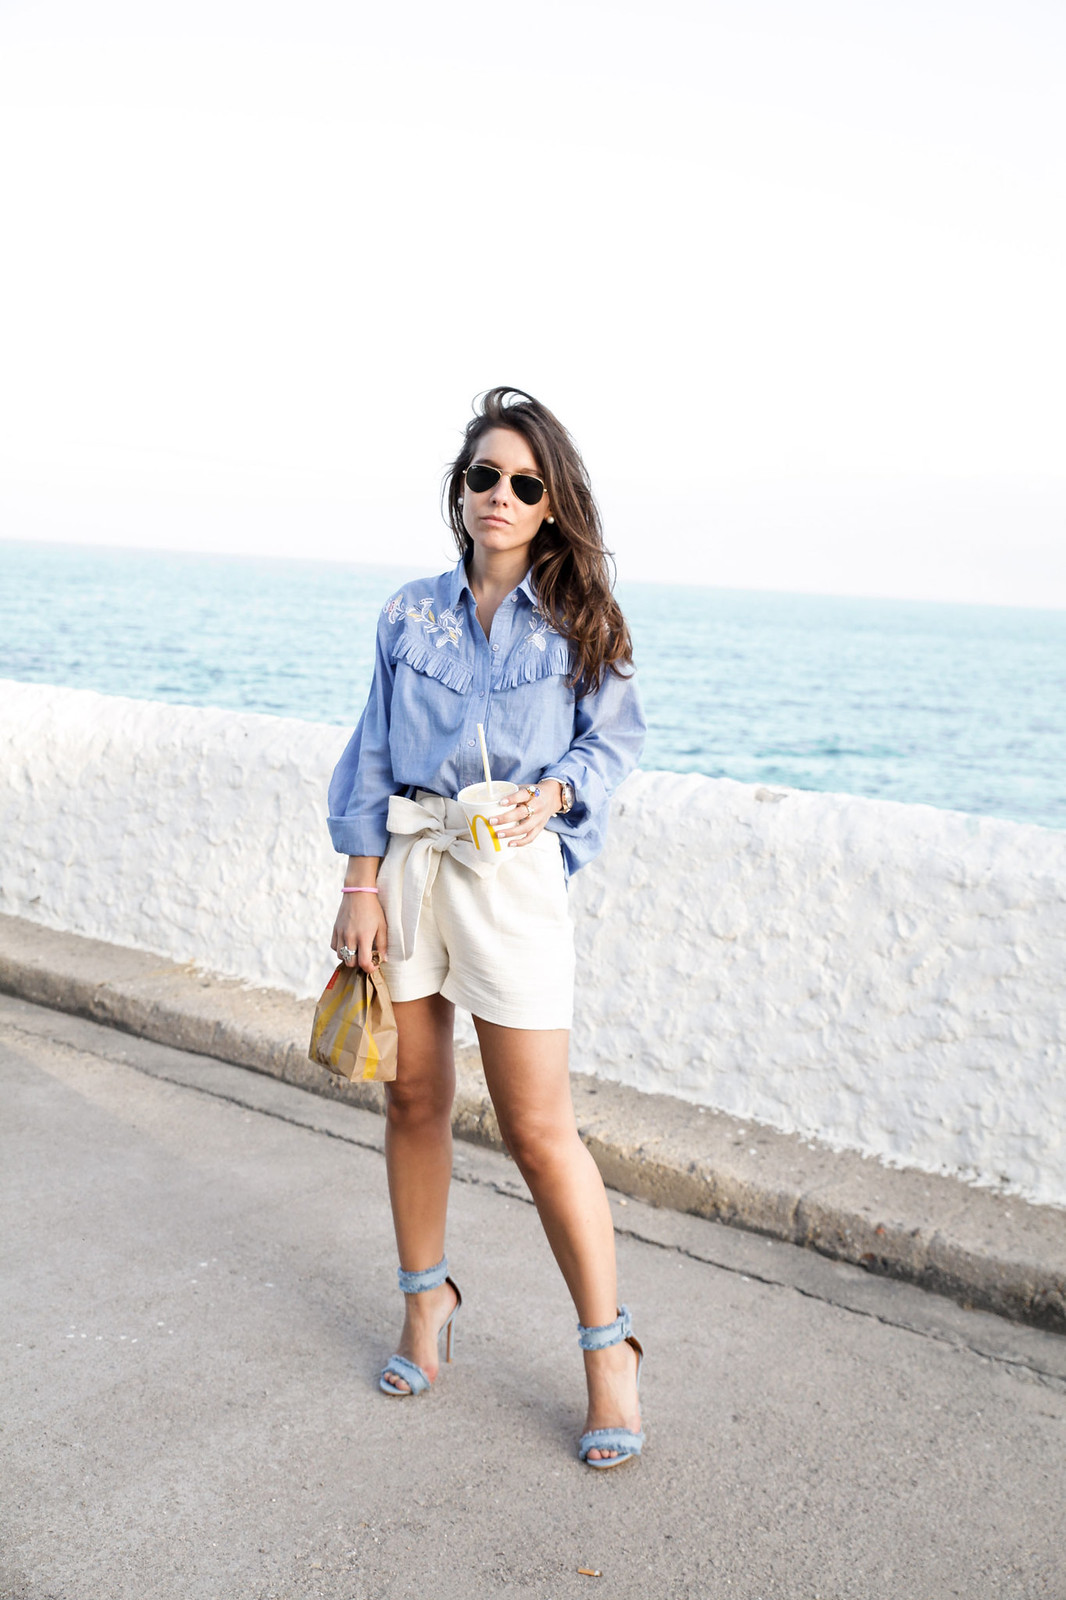 07_camisa_flecos_azul_mysundaymorning_fringed_shirt_fringed_theguestgirl_influencer_inspo_outft_summer_laura_santolaria_public_desire_denim_shoes_mc_donalds